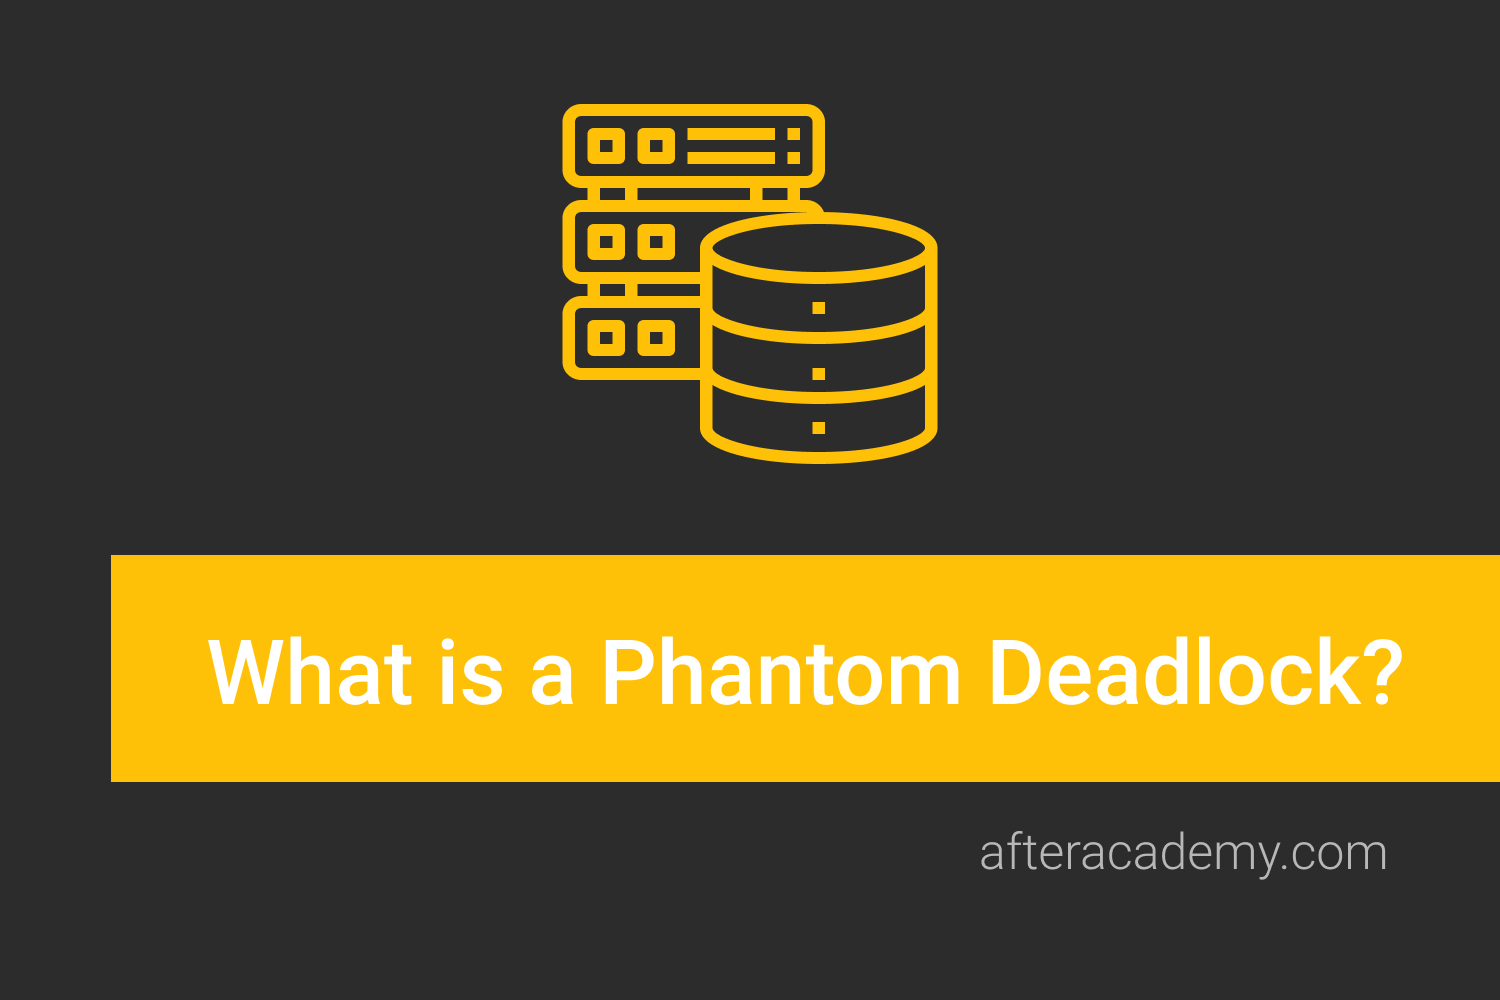 What is a Phantom deadlock?